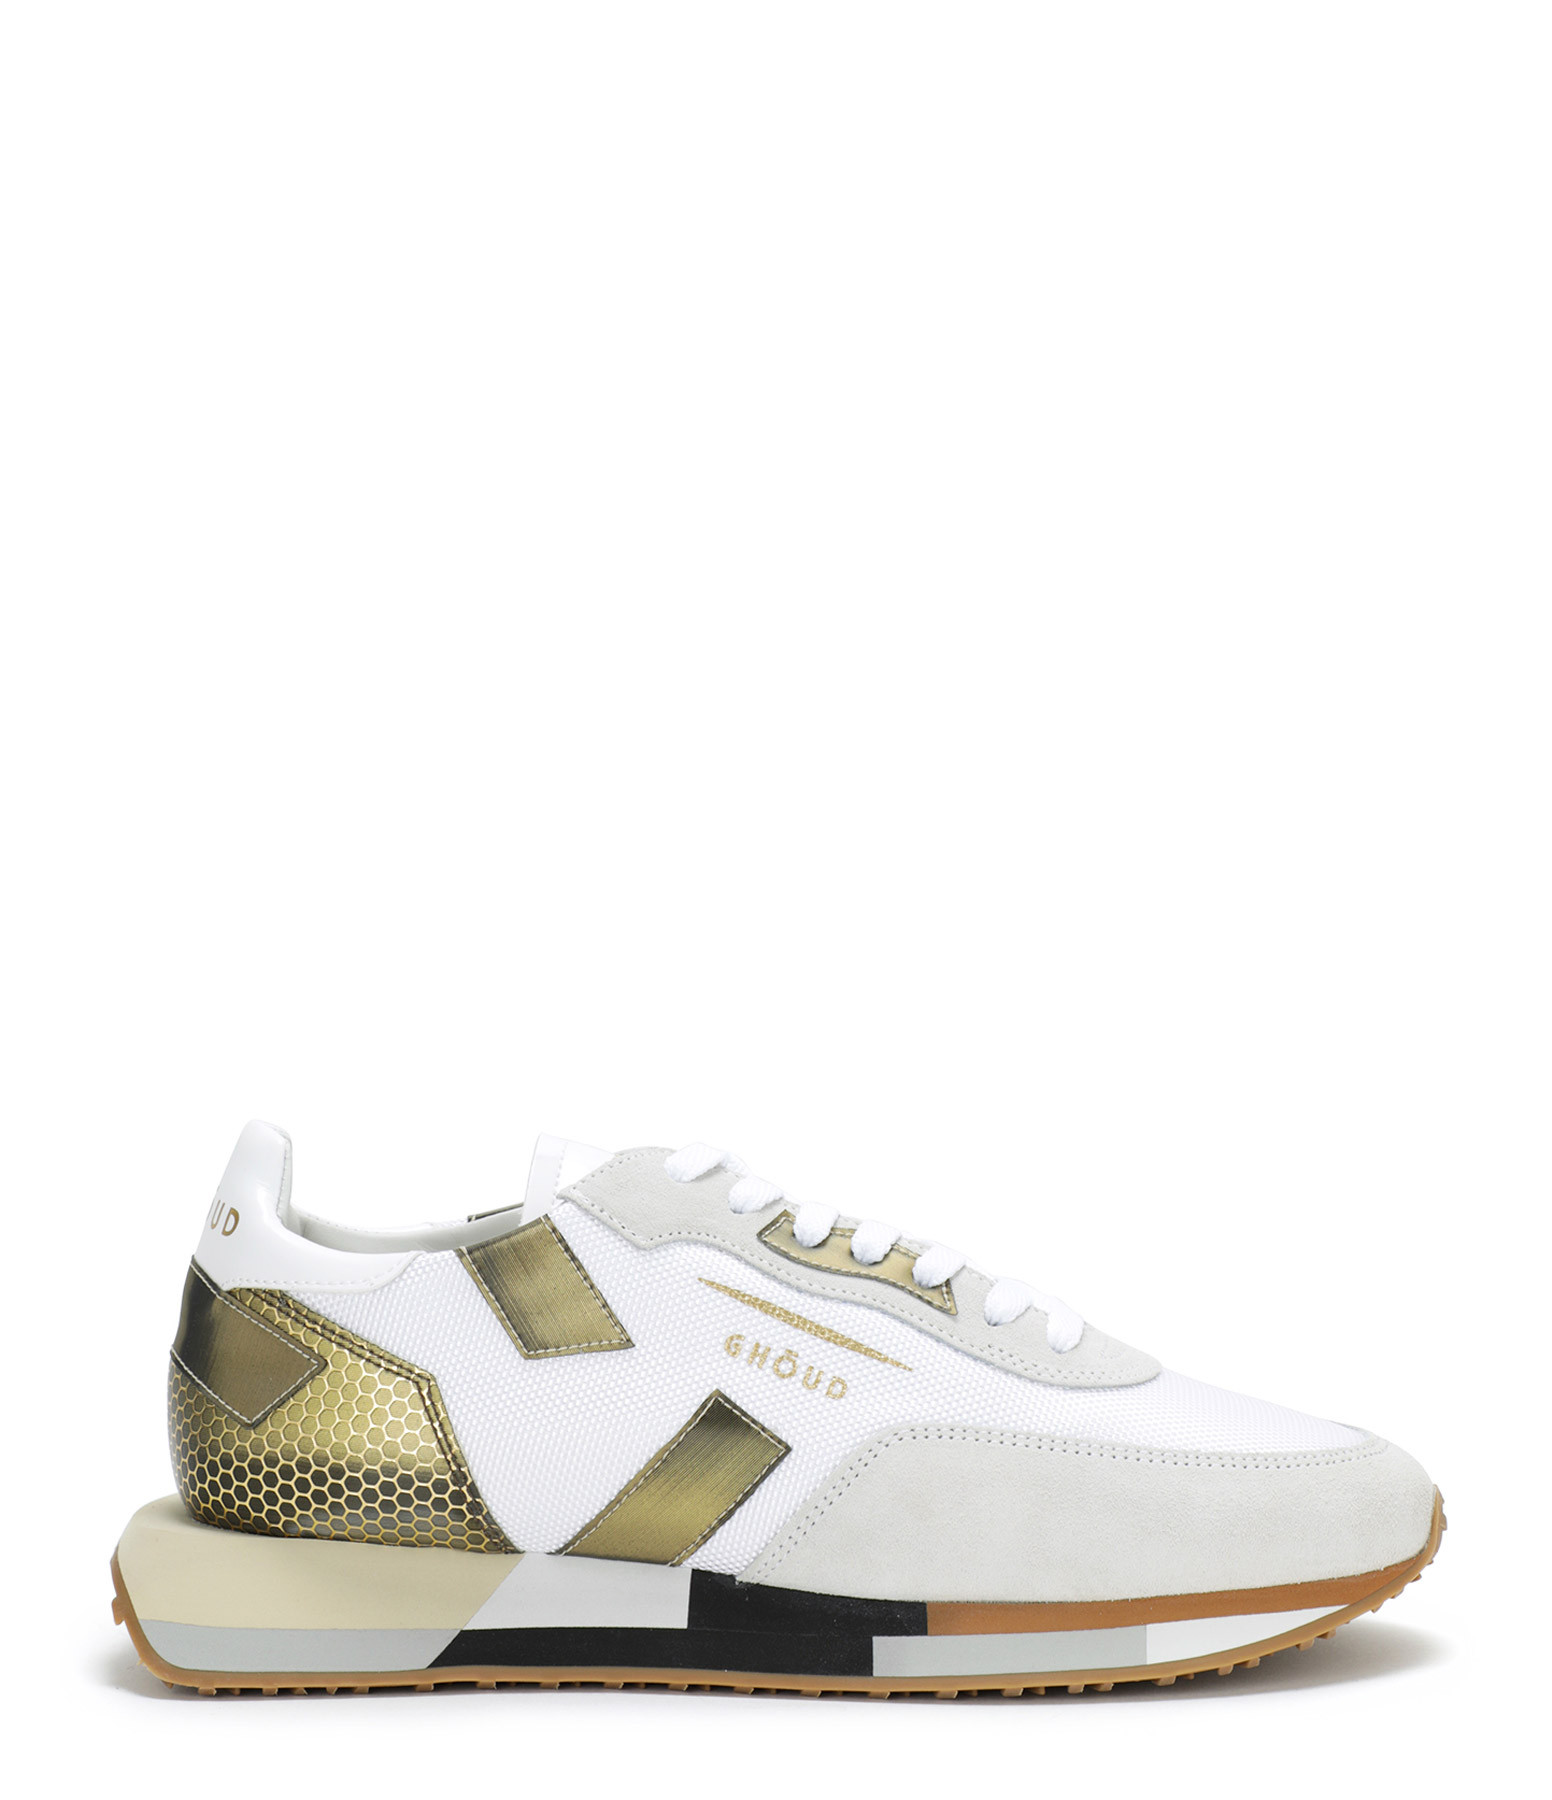 GHOUD VENICE - Baskets Running Cuir Multi Rush Blanc Bronze